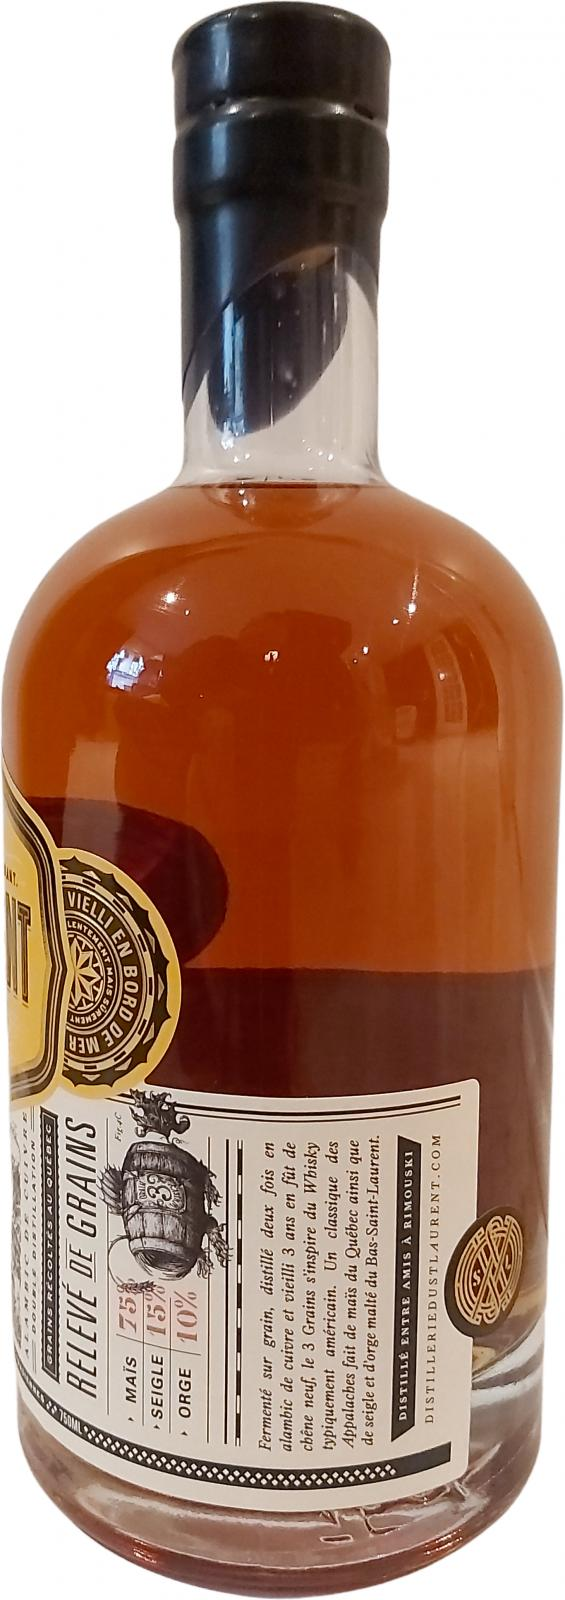 St. Laurent 03-year-old